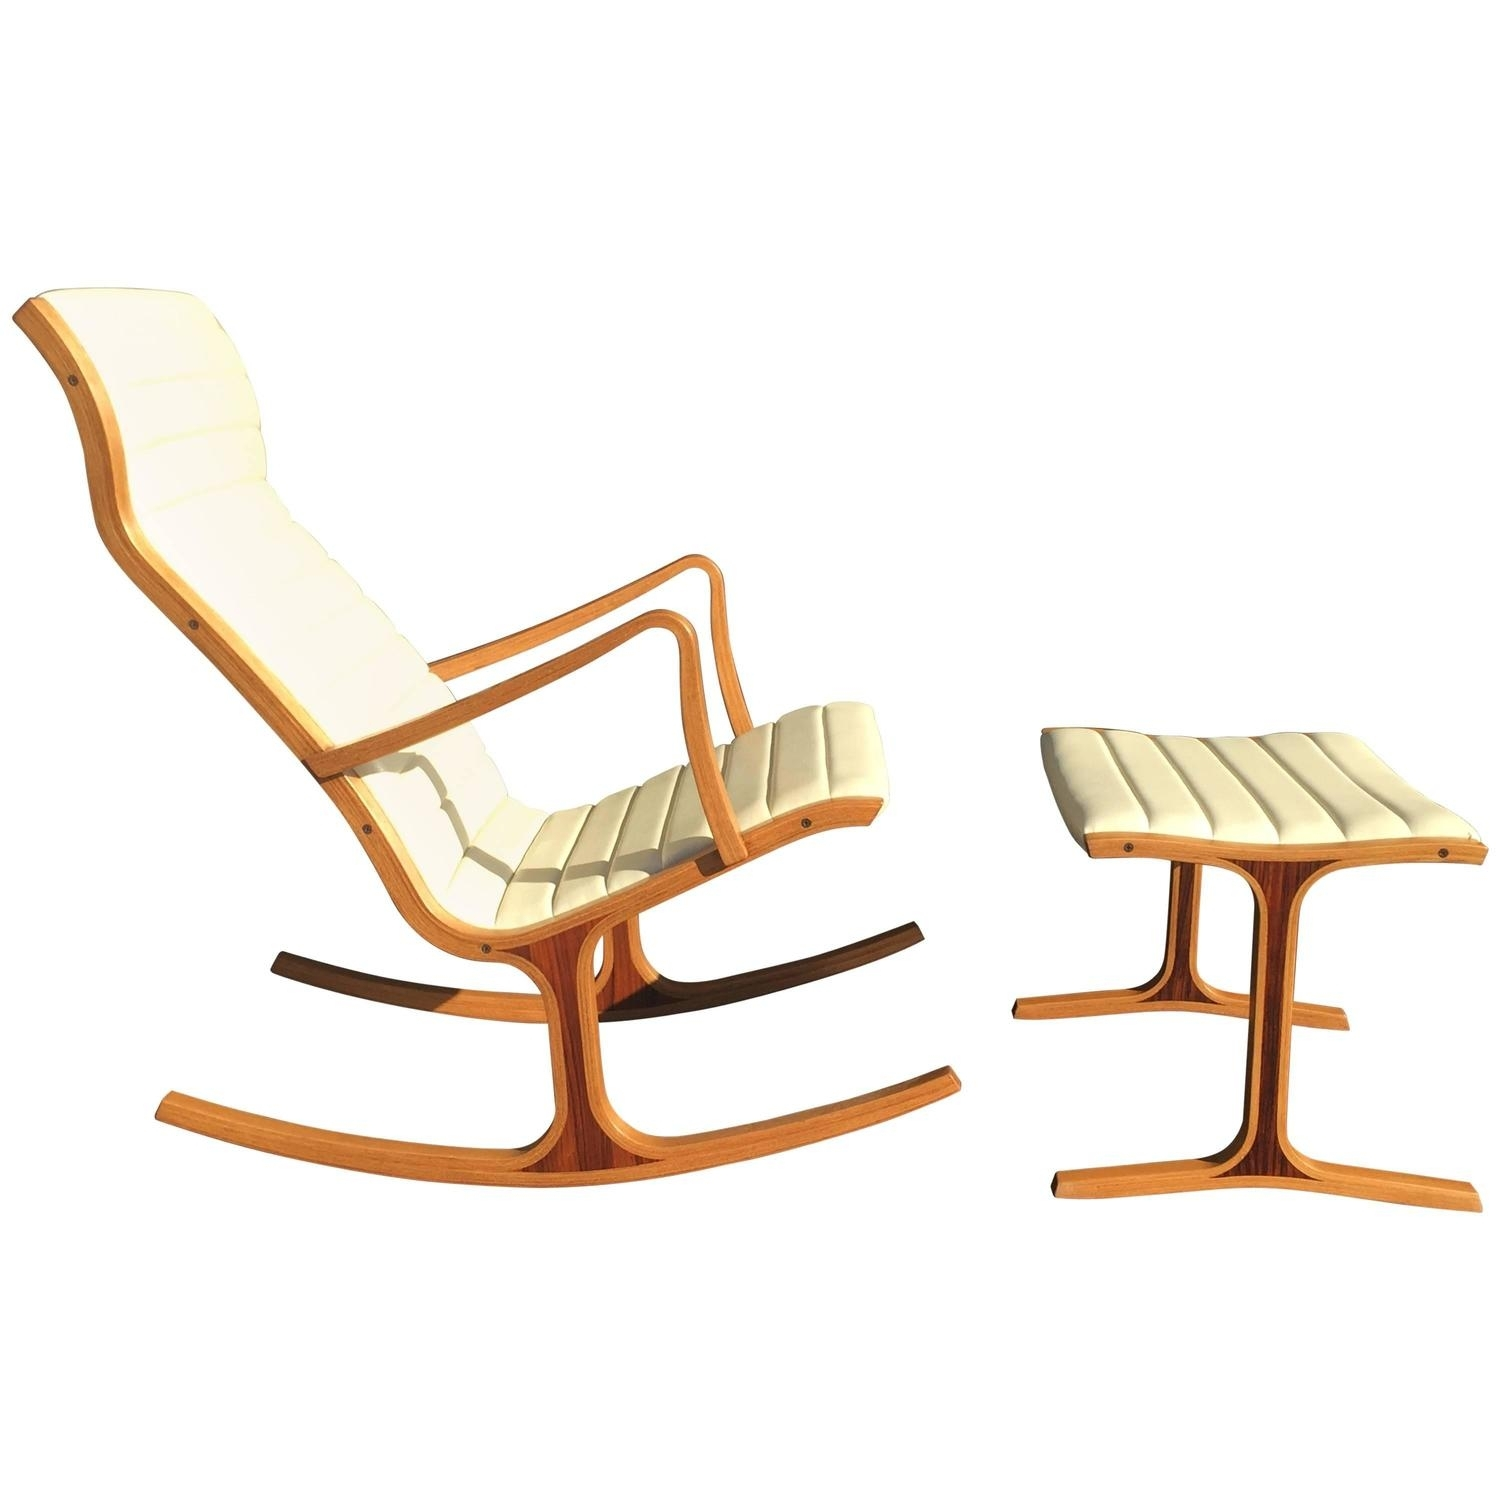 Inspiration about Tendo Mokko Heron Rocking Chair And Footrest For Kosuga Japan At 1Stdibs In Rocking Chairs With Footrest (#4 of 15)